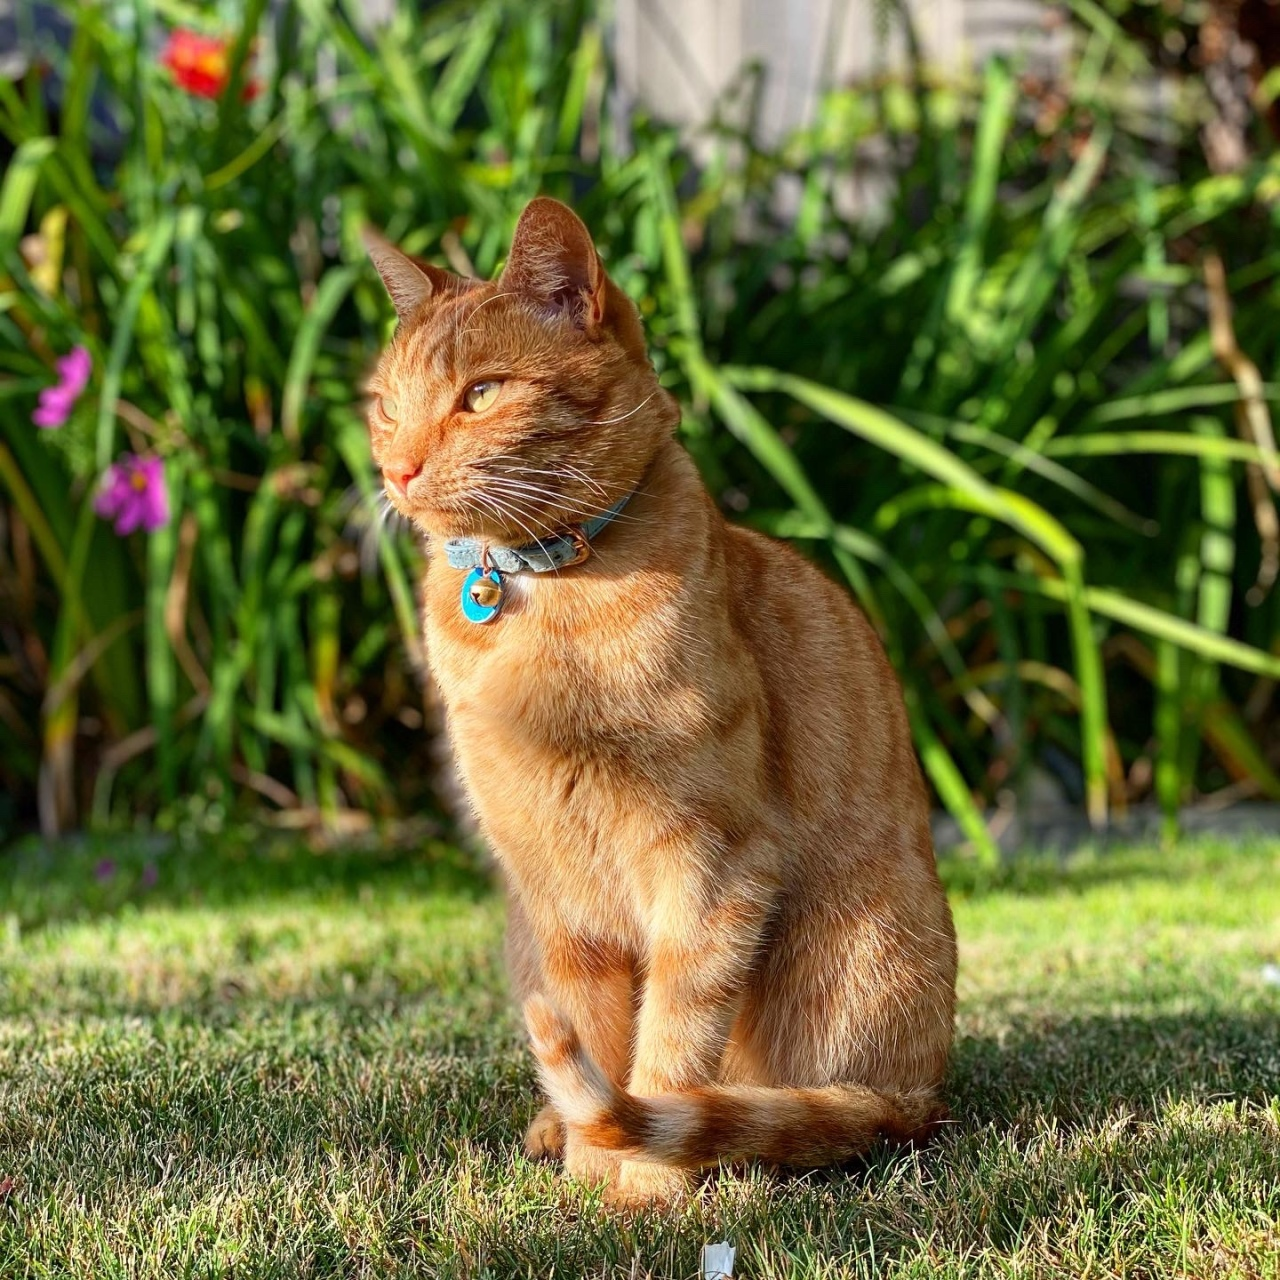 Jack the ginger cat sitting in the grass with the sunlight on his face